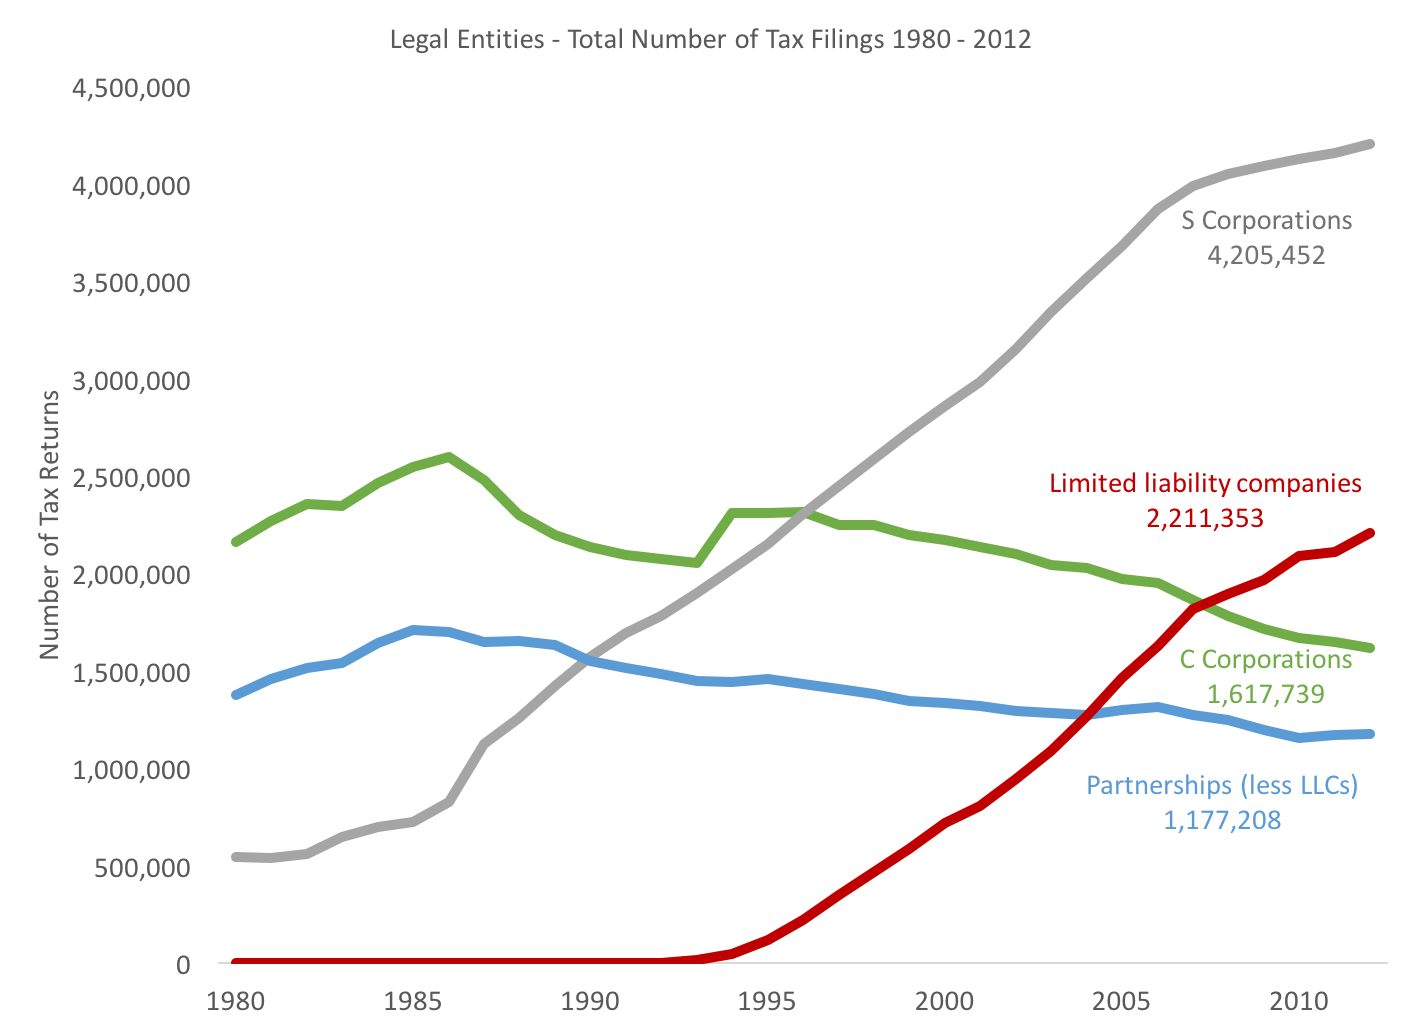 Total Number of Legal Entities 1980-2012.